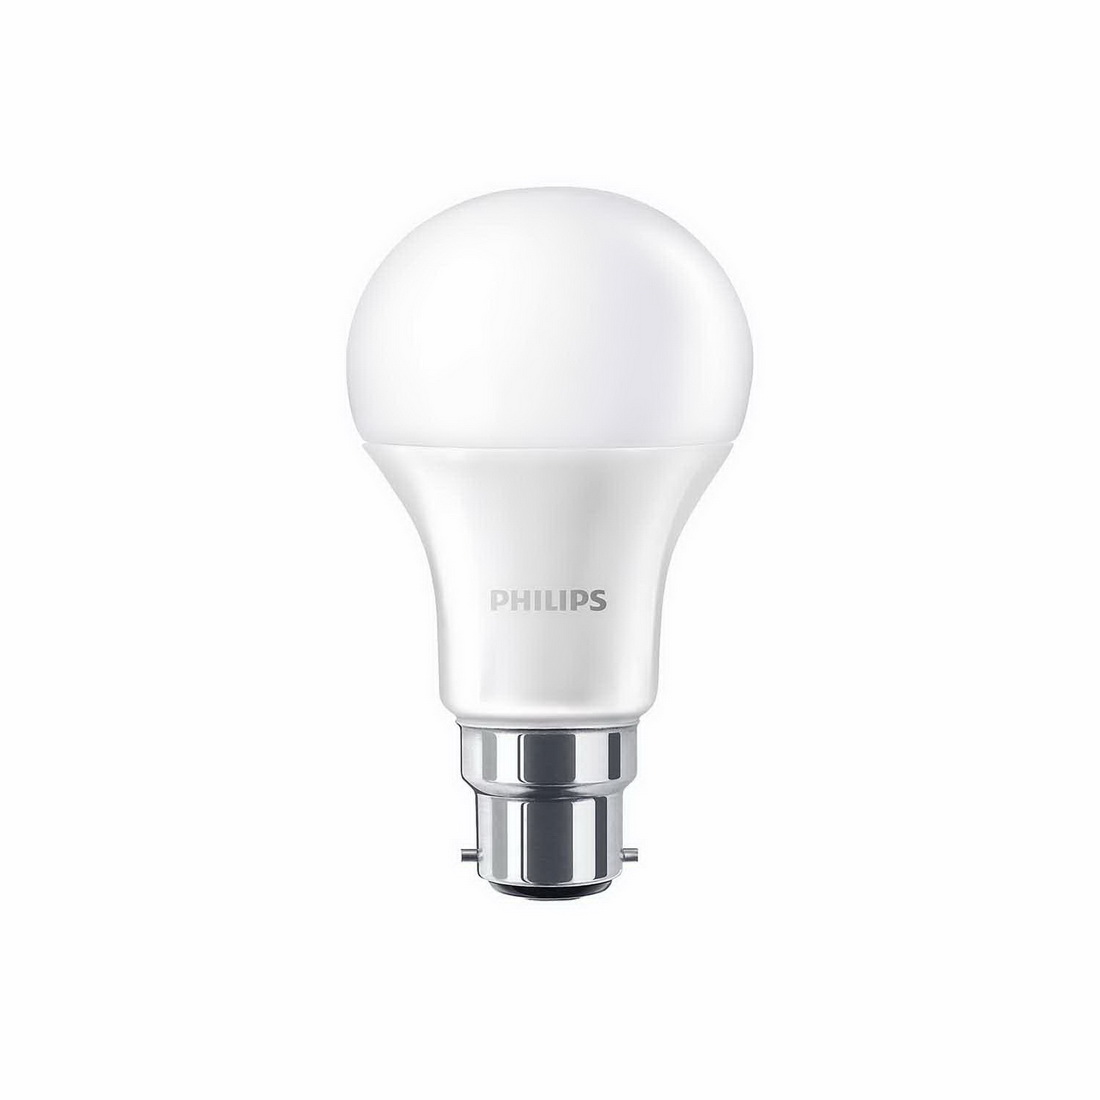 Master 8.5W 806lm B22 2700K A60 Dimmable LED Bulb Warm Glow Frosted